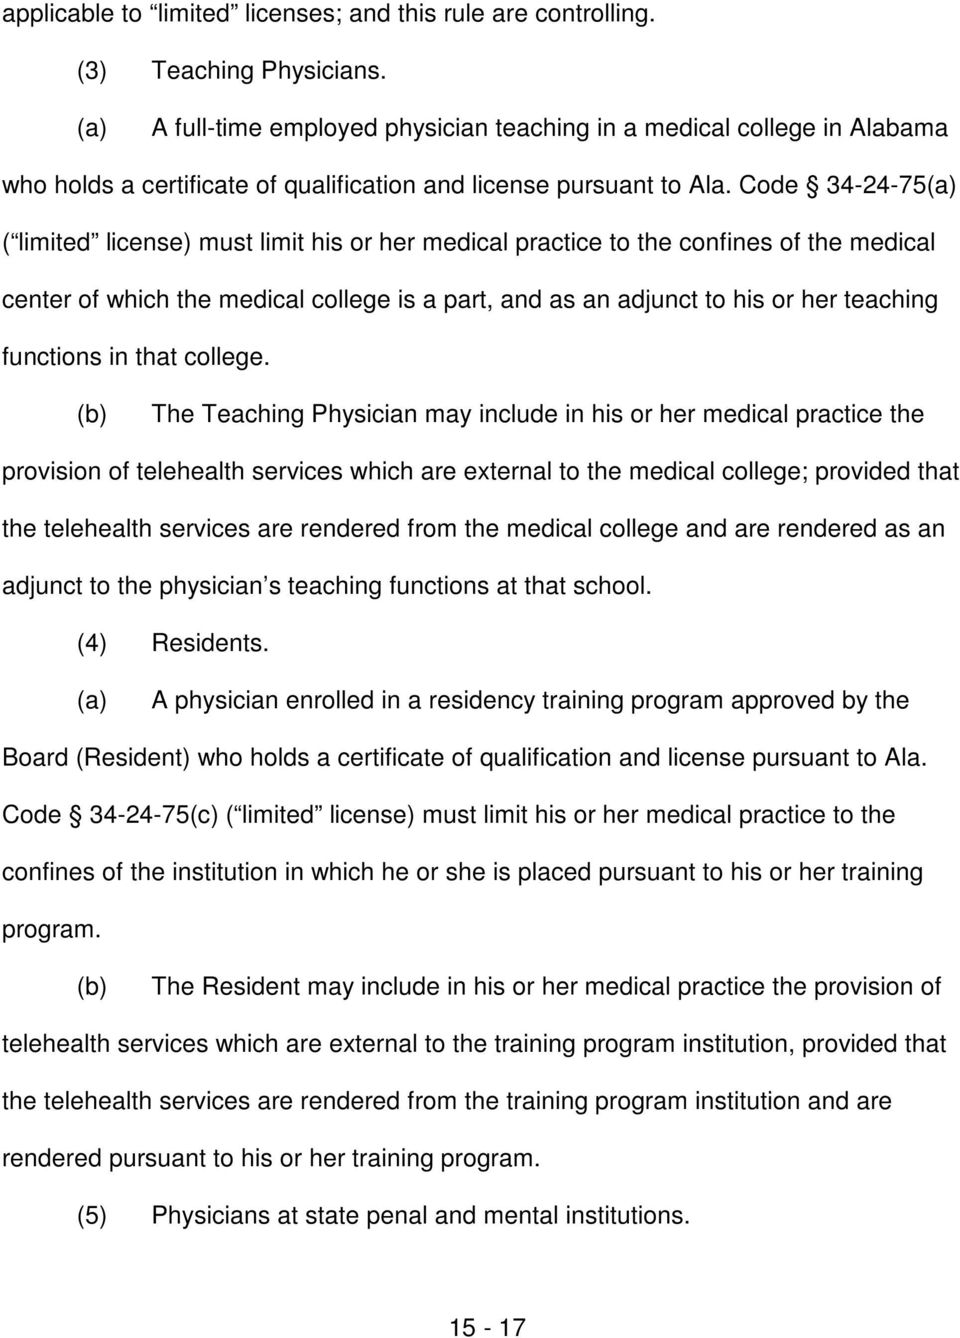 Code 34-24-75 ( limited license) must limit his or her medical practice to the confines of the medical center of which the medical college is a part, and as an adjunct to his or her teaching